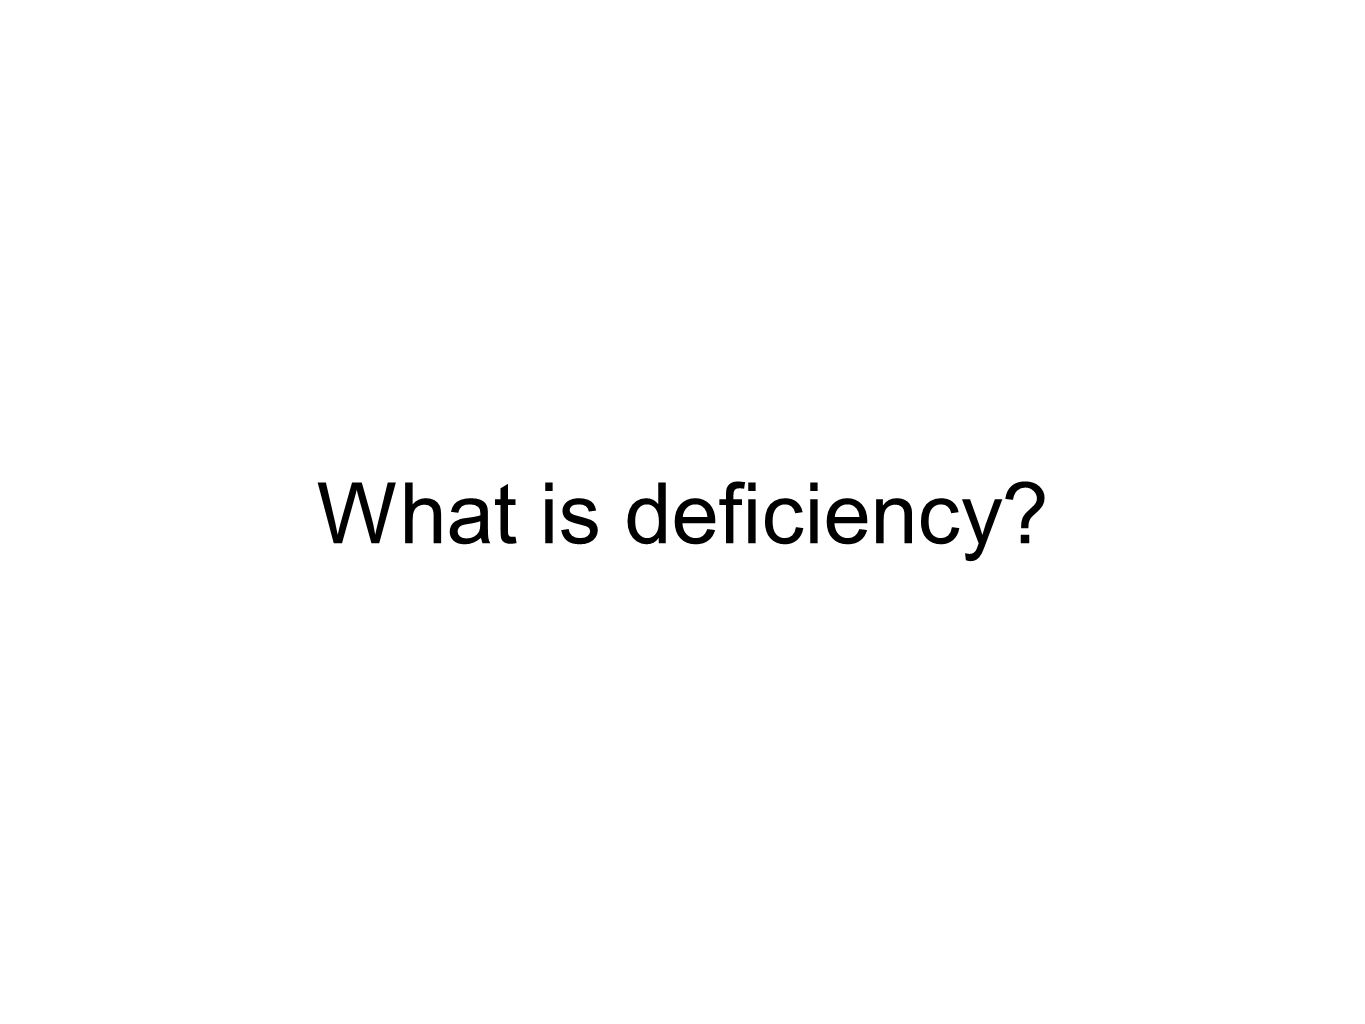 What is deficiency